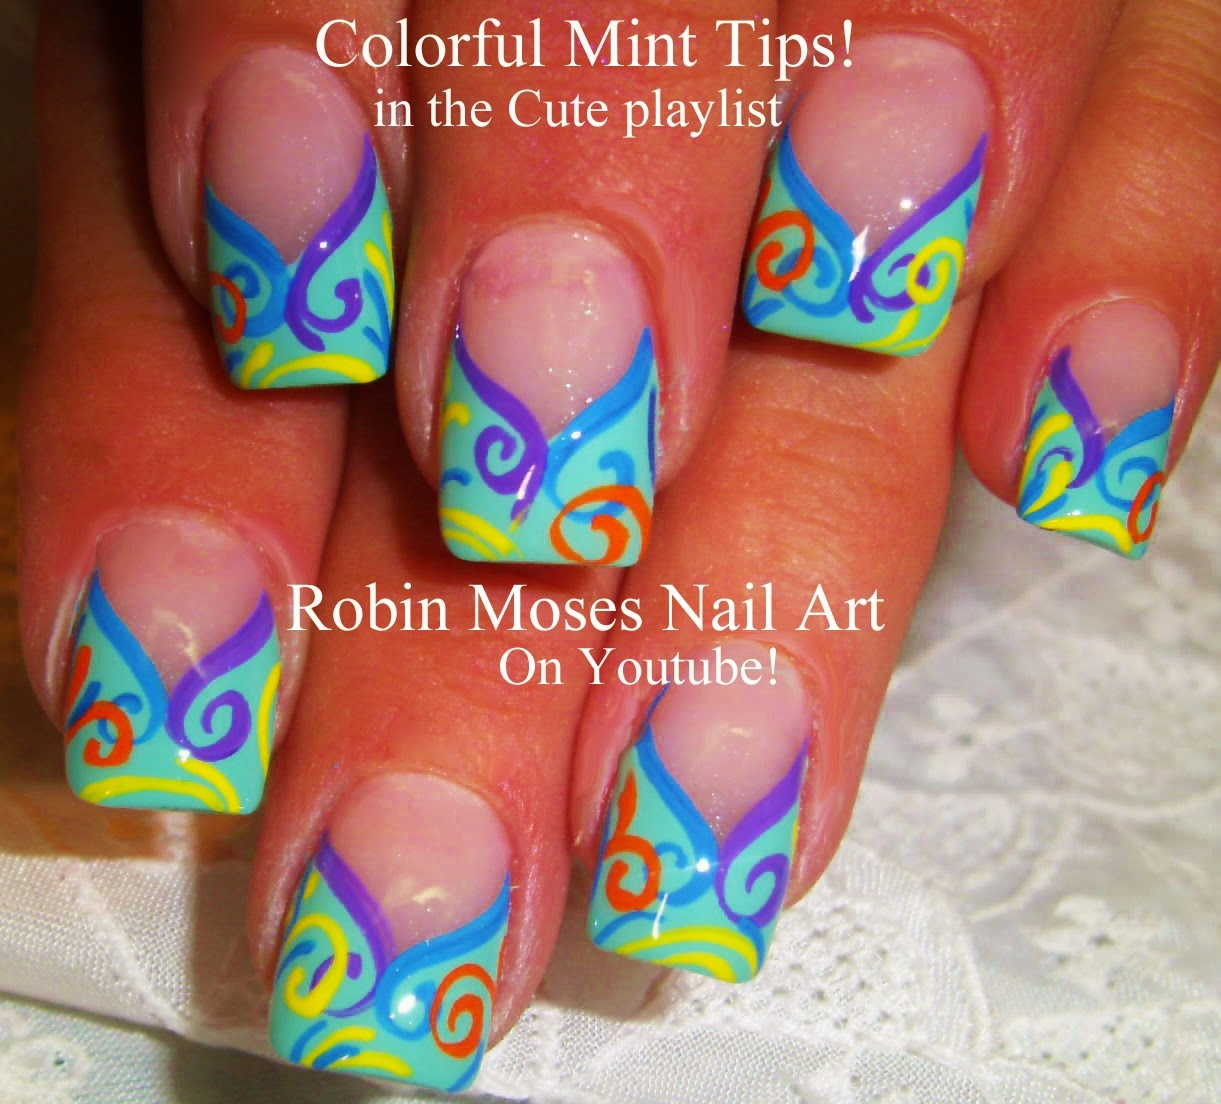 Robin Moses Nail Art February 2015: Robin Moses Nail Art: Easter Nail Art Design Tutorials For